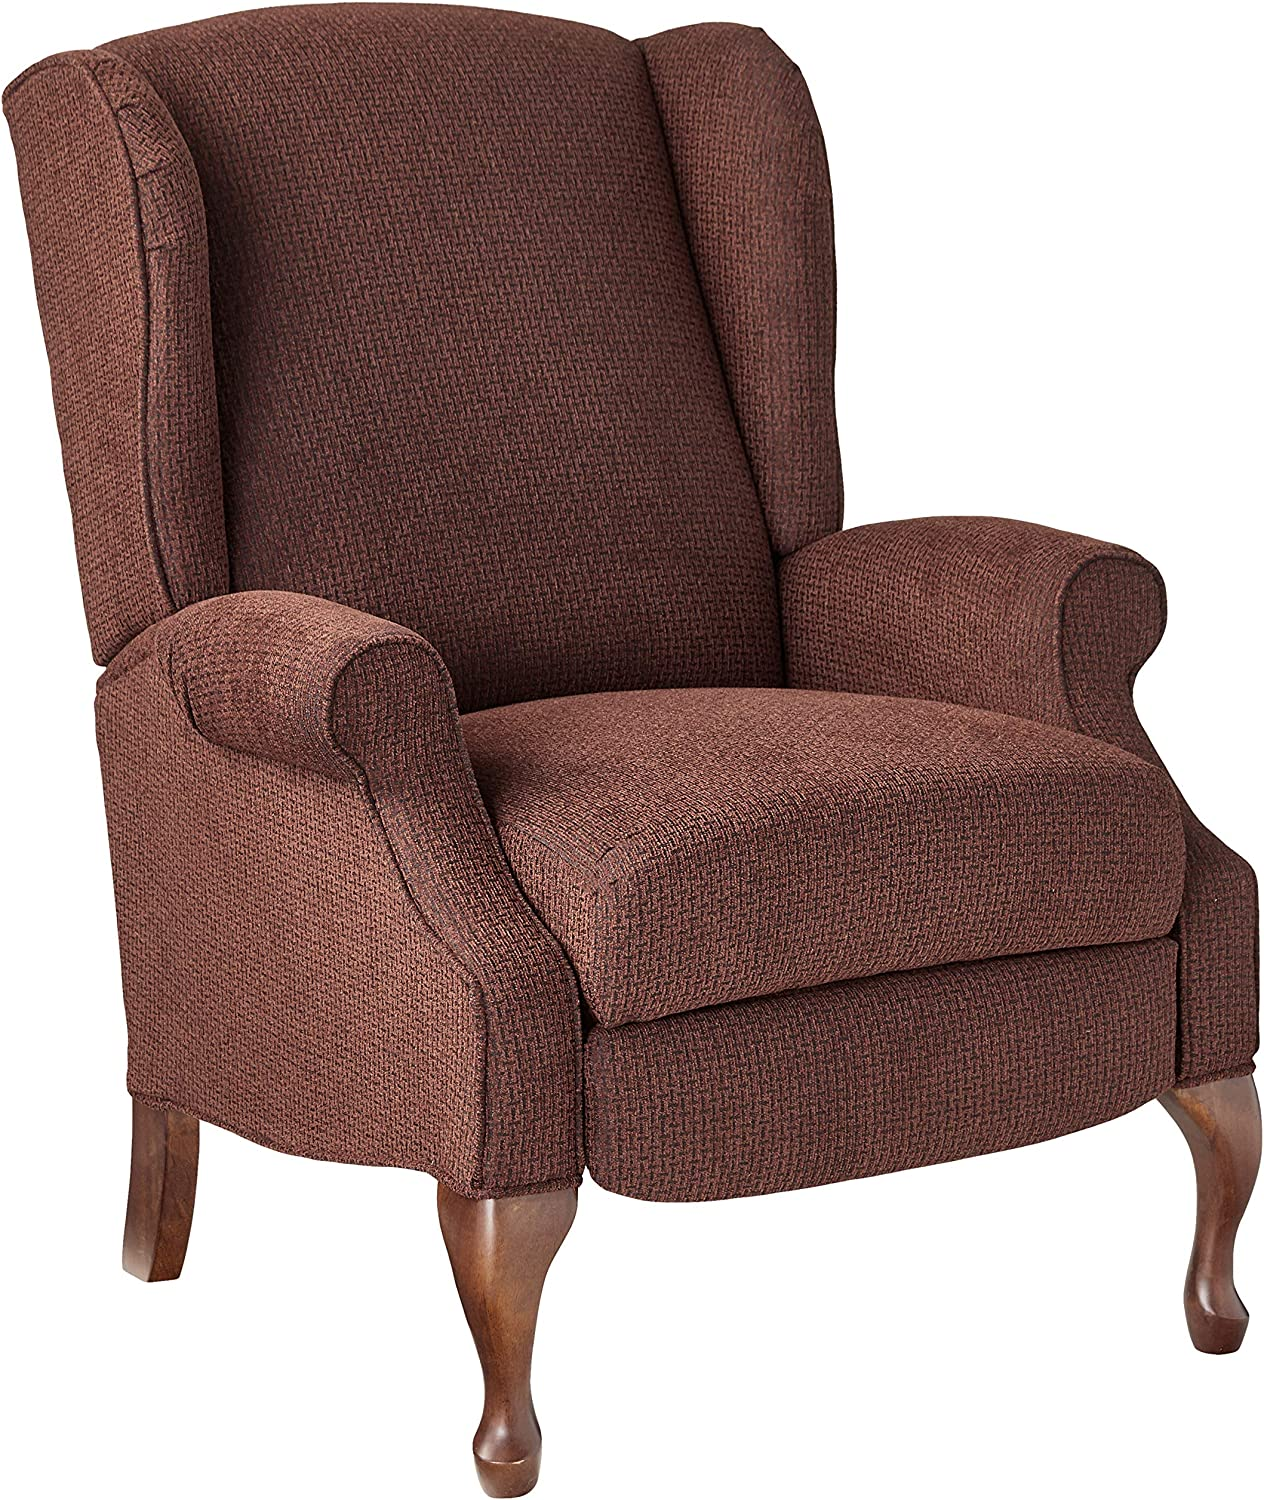 Lane Home Furnishings 6002-11 Glenrock Tawny Hi Leg Recliner,Medium